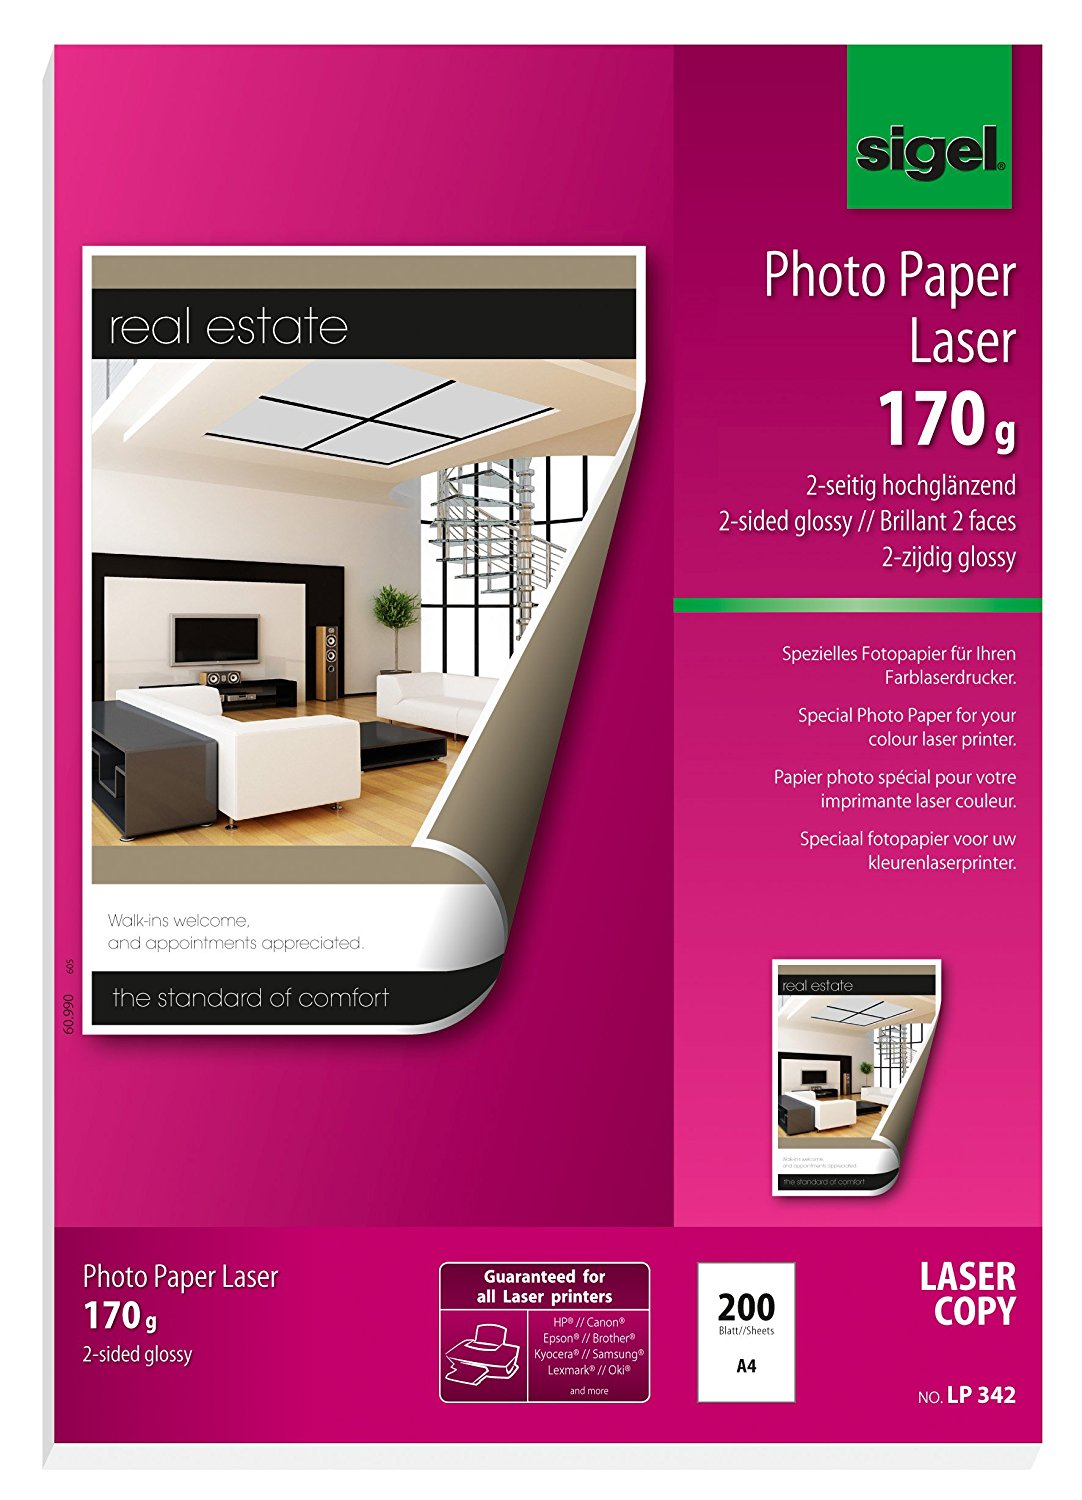 Sigel LP342 Photo Paper for Colour Laser/Copier, 2-sided glossy, 114.9 lbs, A4, 200 sheets